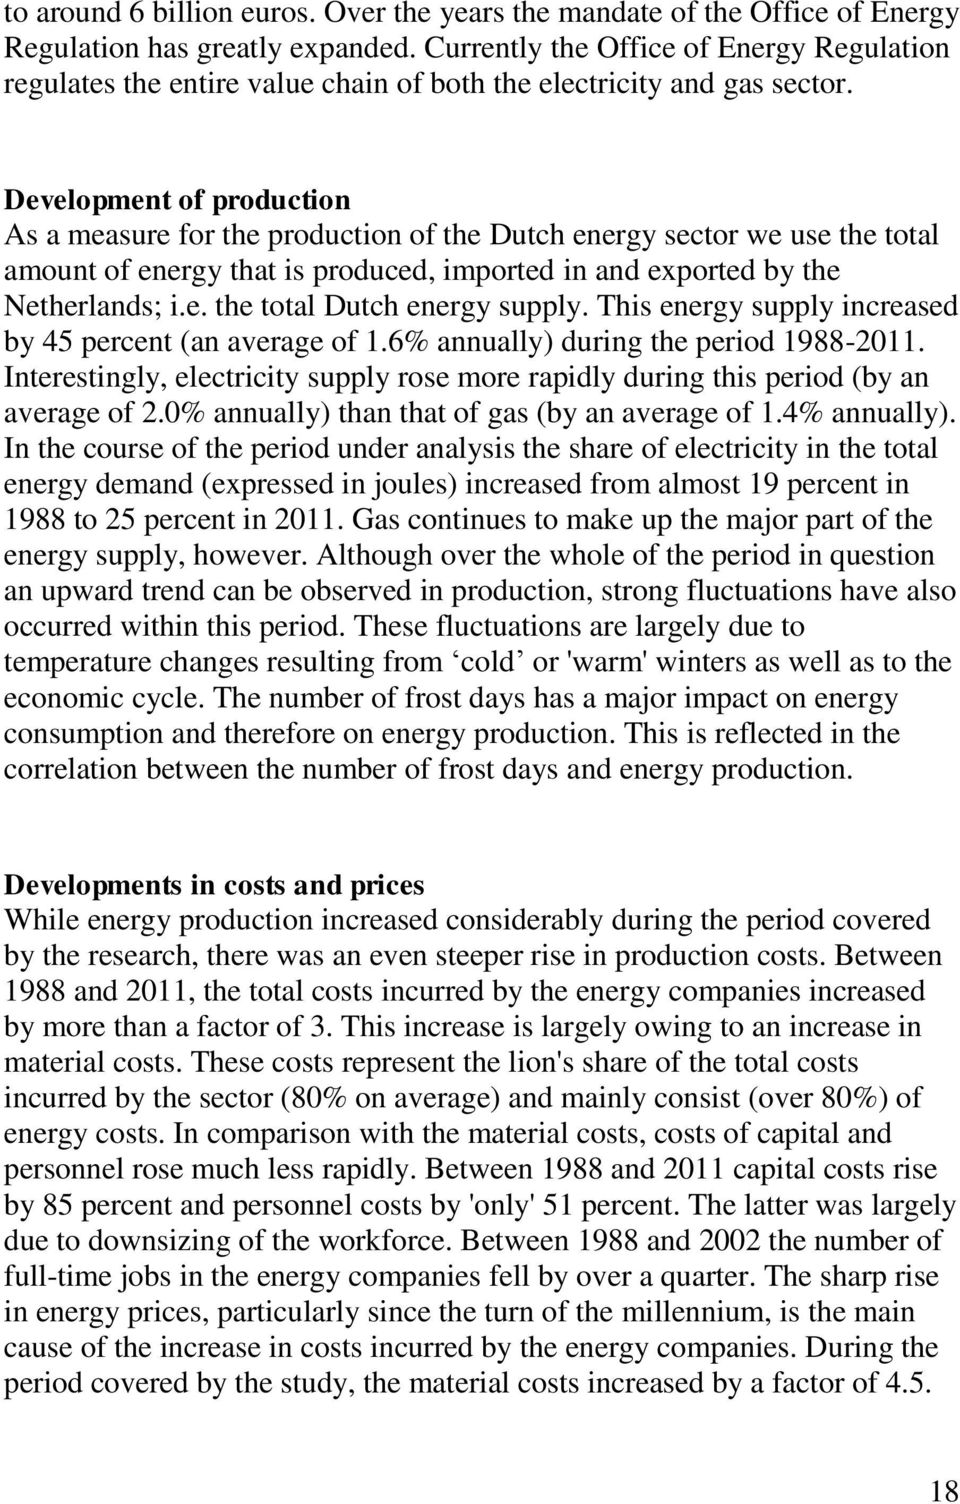 Development of production As a measure for the production of the Dutch energy sector we use the total amount of energy that is produced, imported in and exported by the Netherlands; i.e. the total Dutch energy supply.